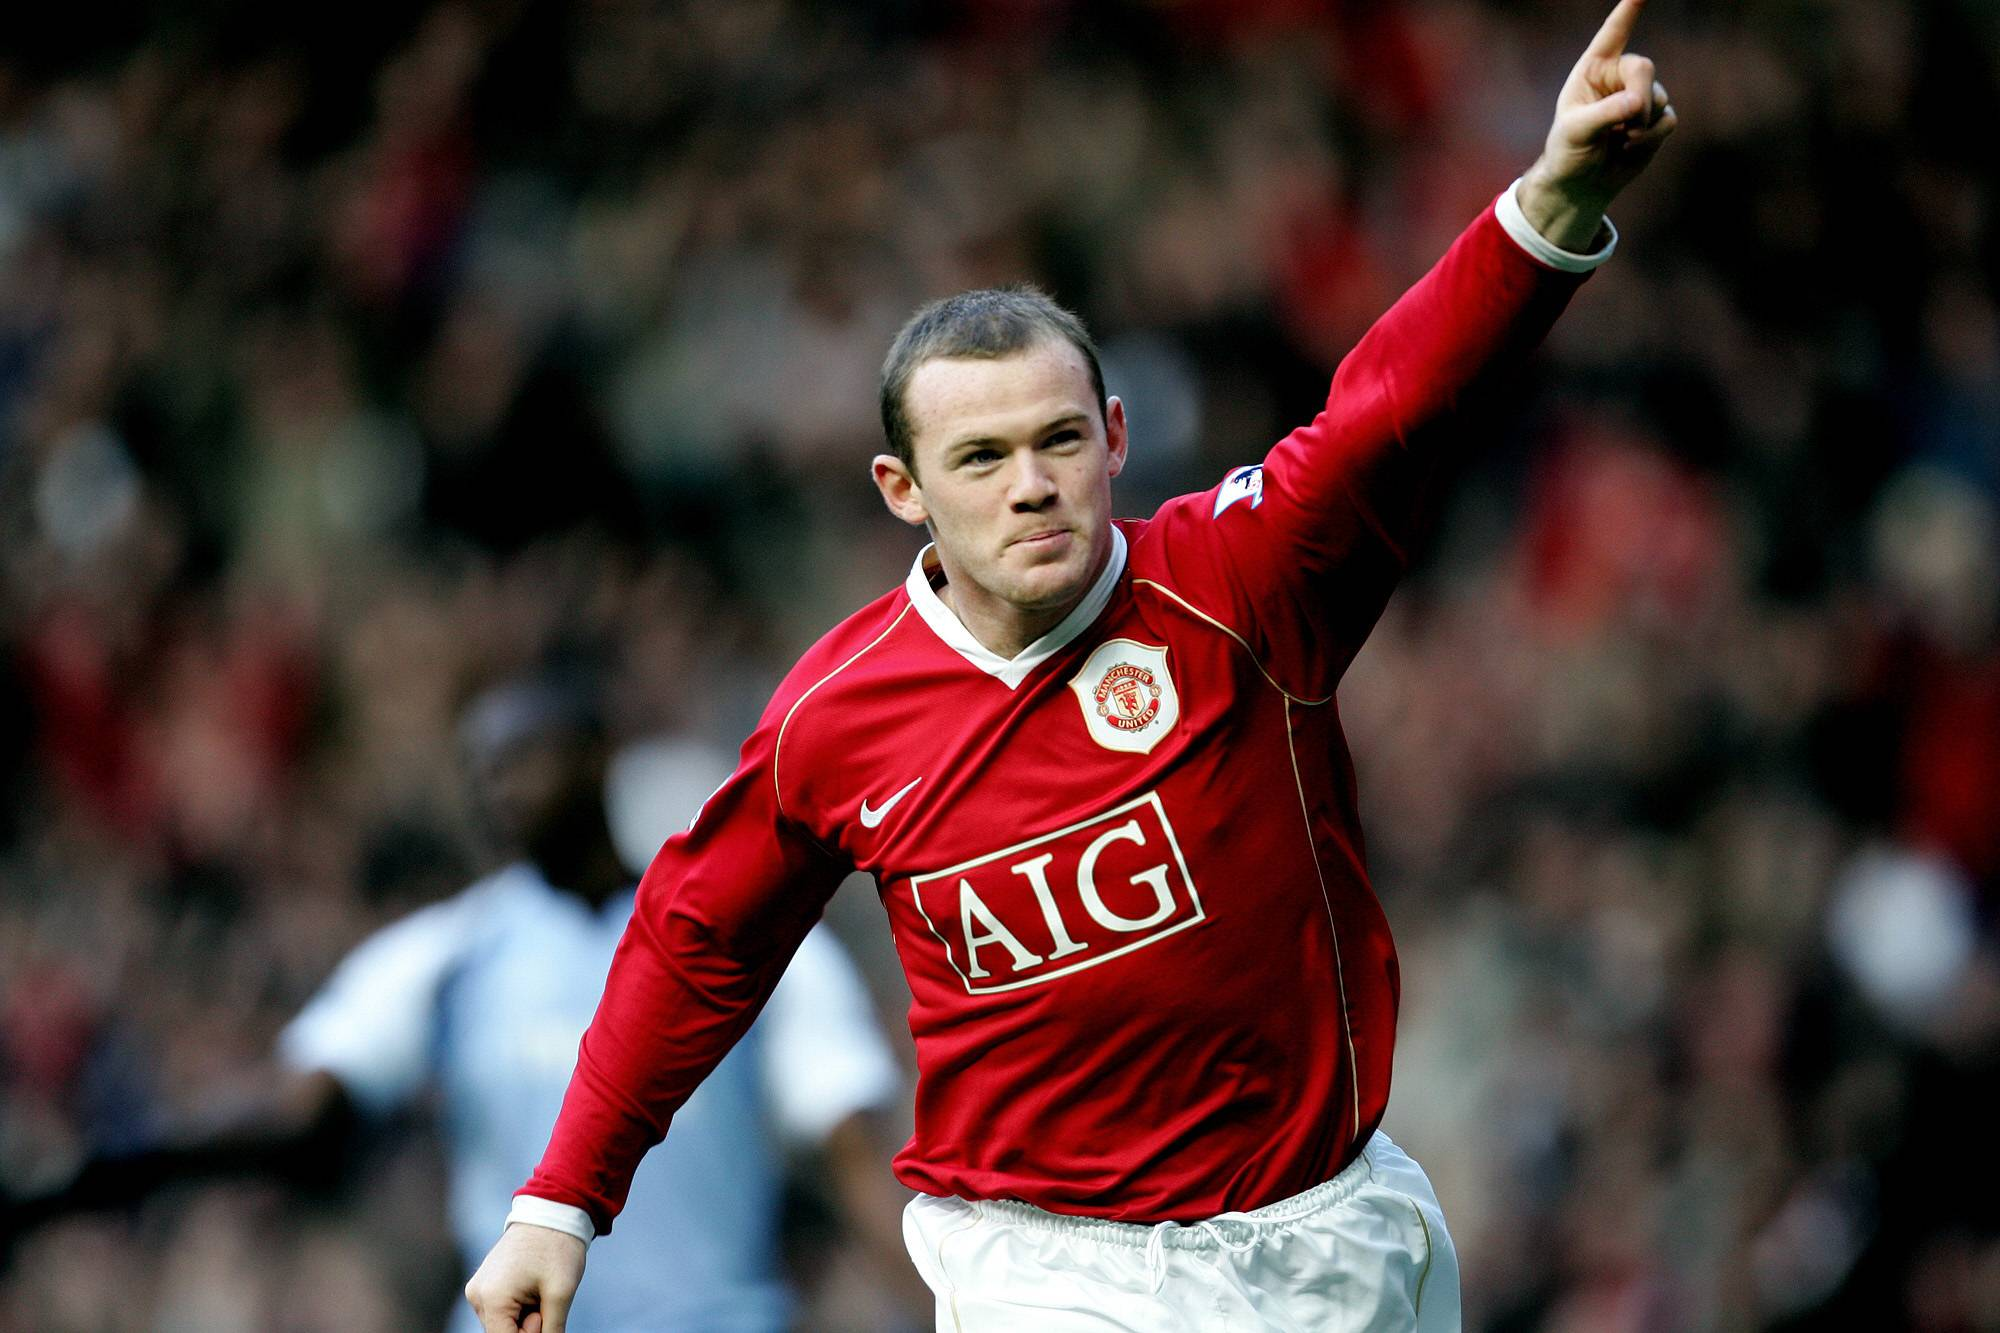 Solskjaer's message to Wayne Rooney upon retirement